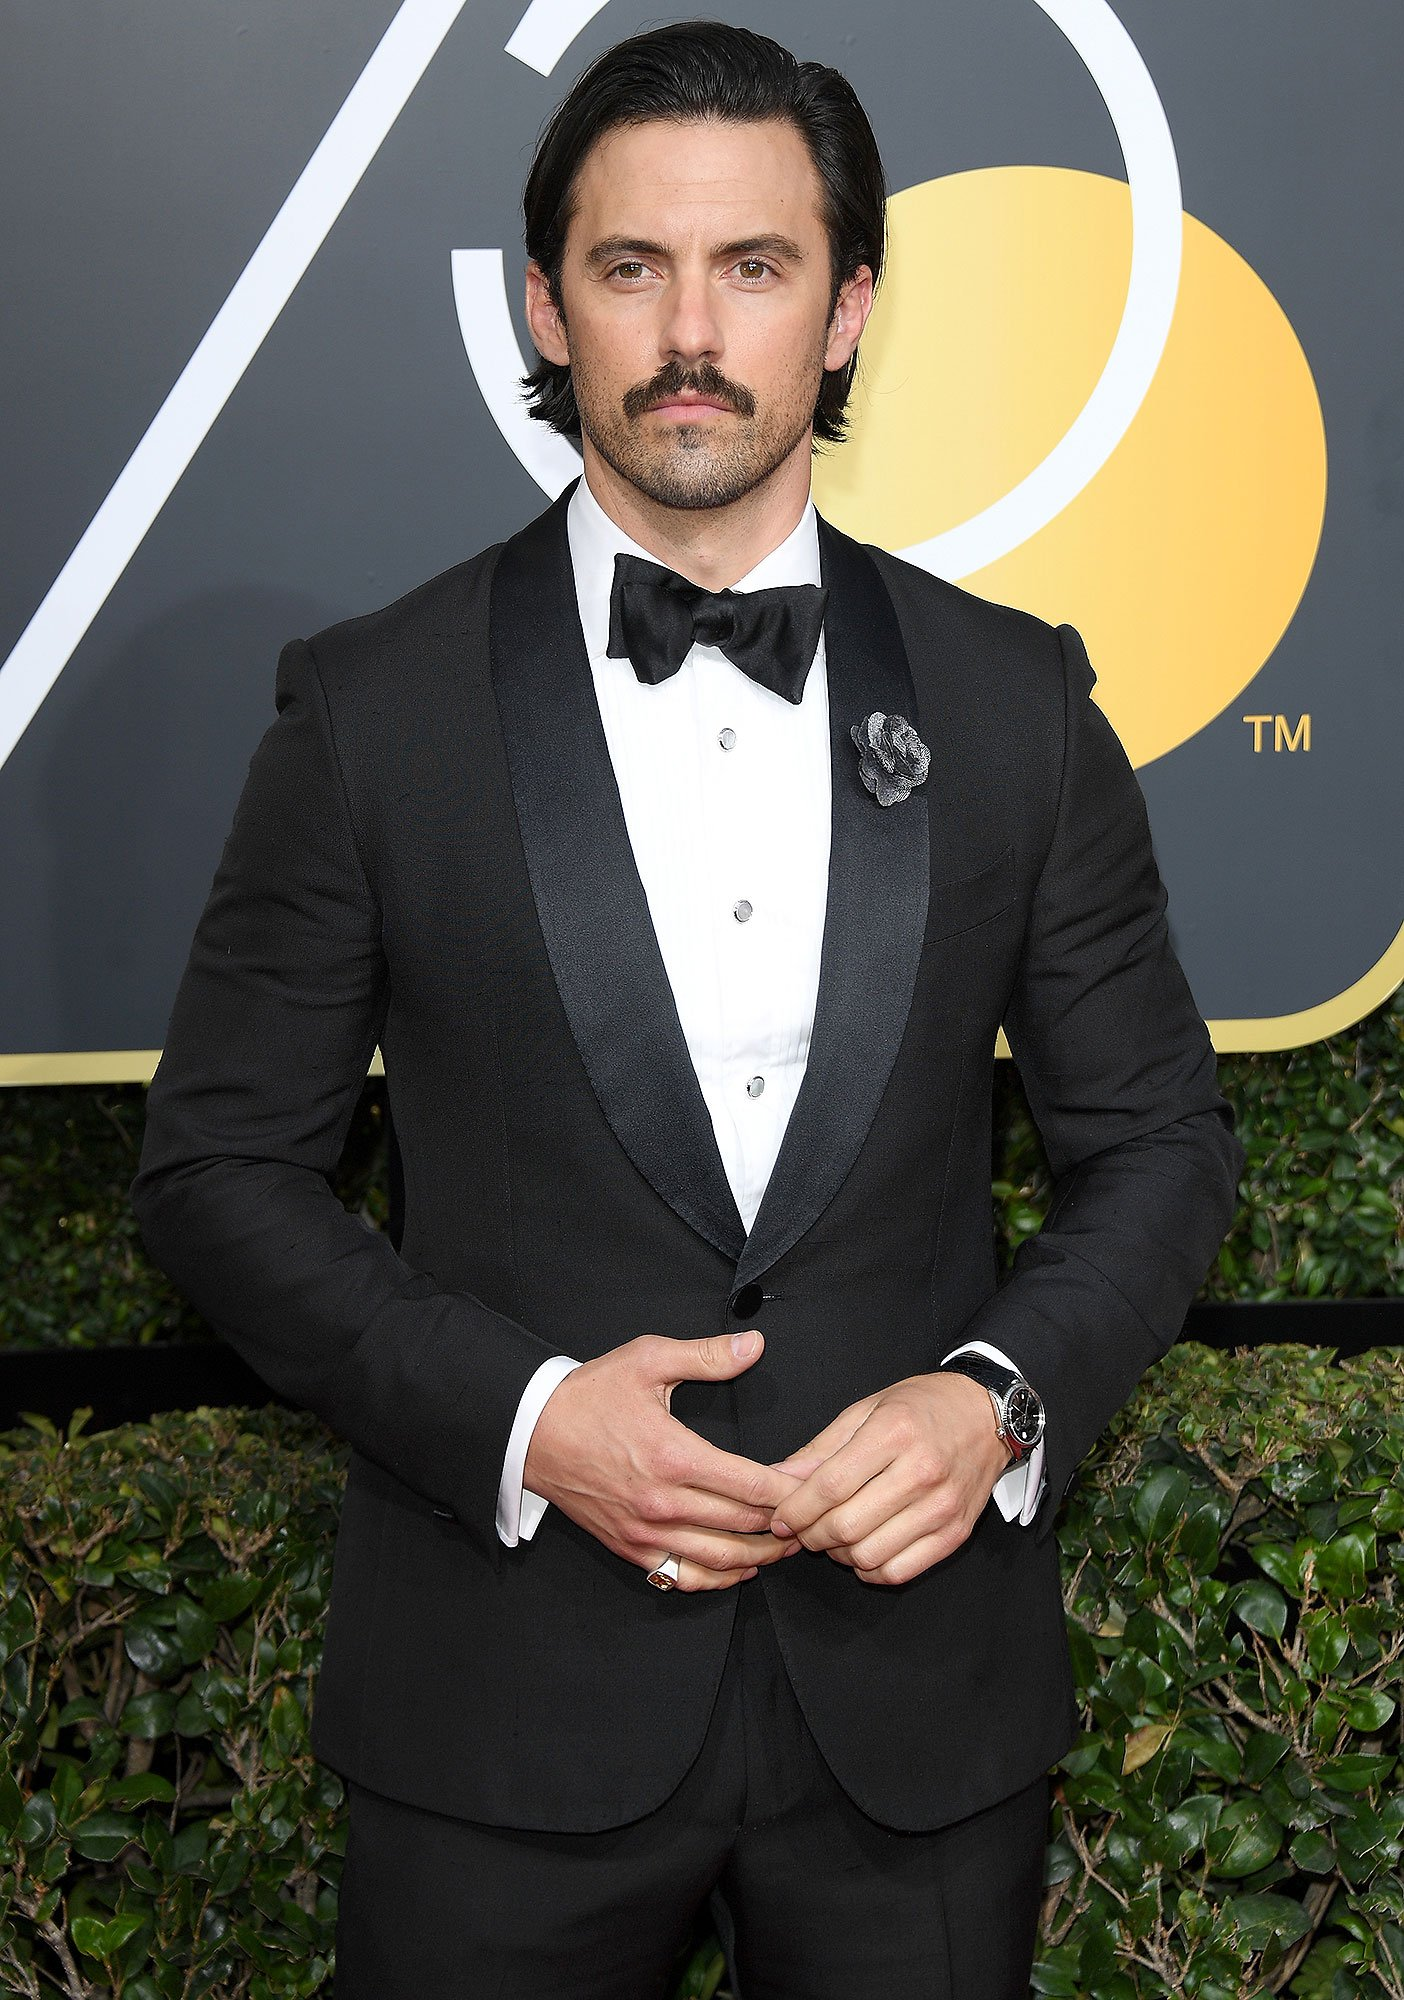 Yes, Milo Ventimiglia fell into the swimming pool at a Golden Globes afterparty